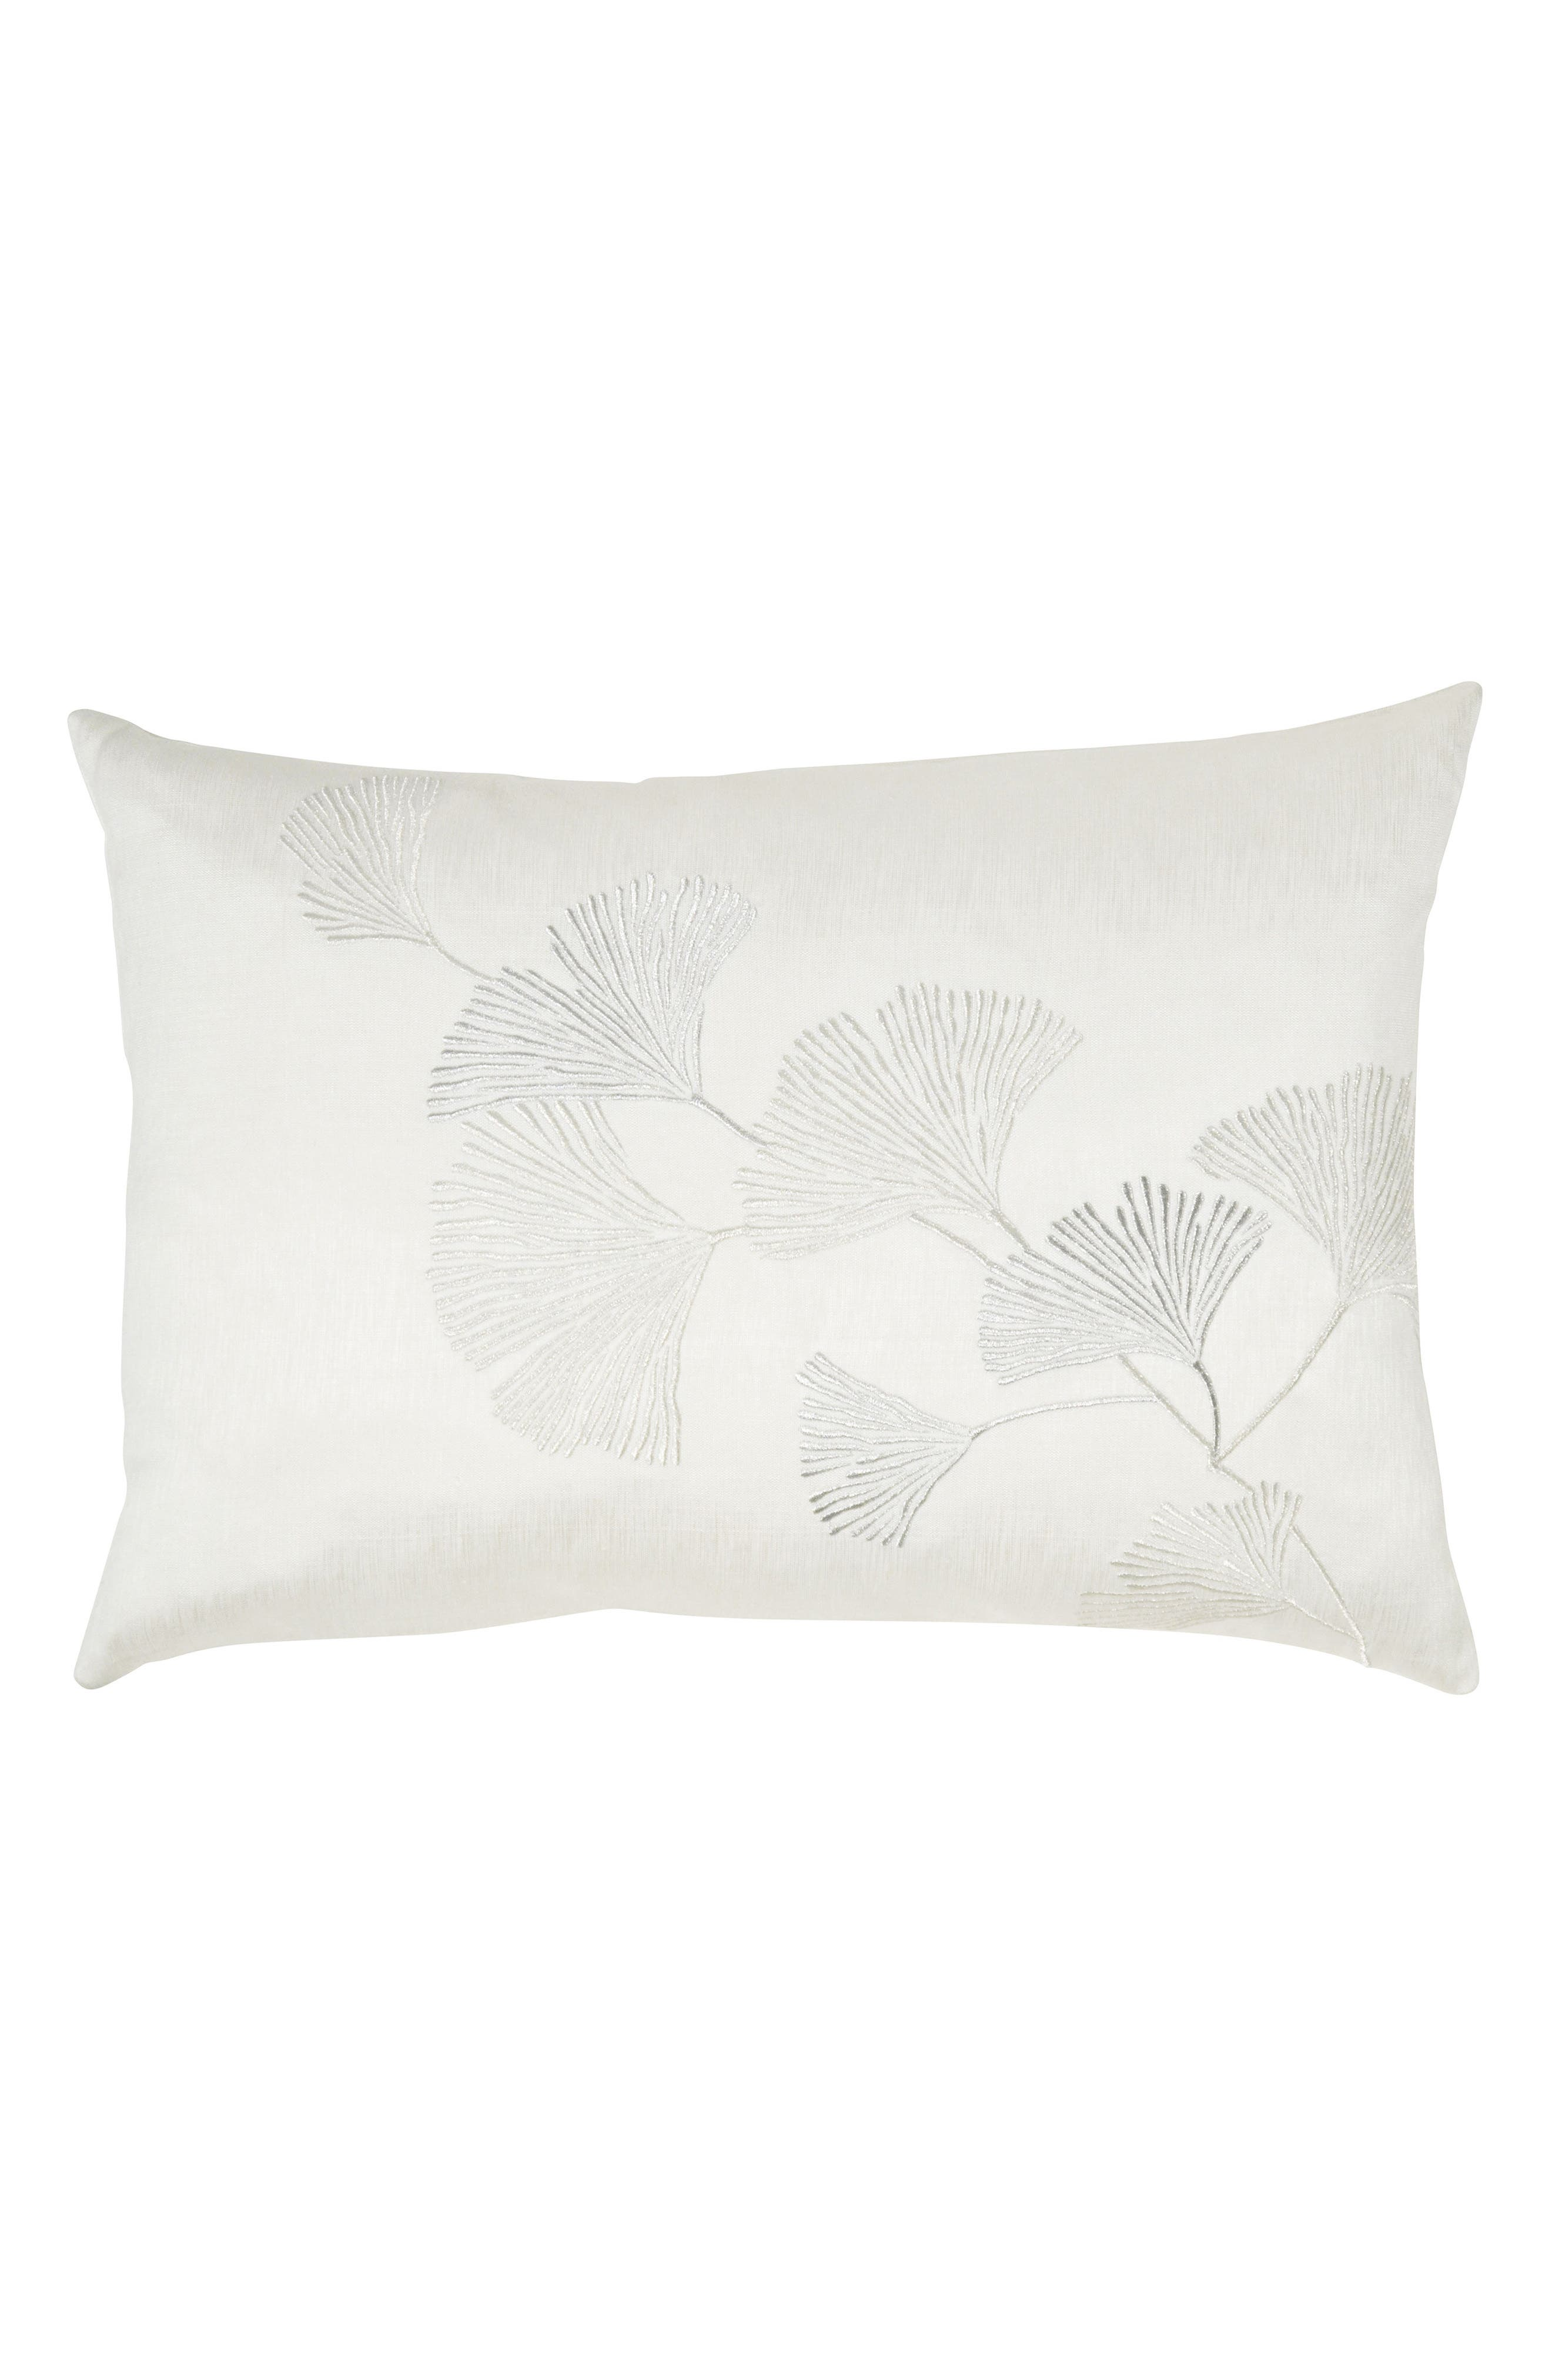 Main Image - Michael Aram Ginkgo Leaf Embroidered Accent Pillow